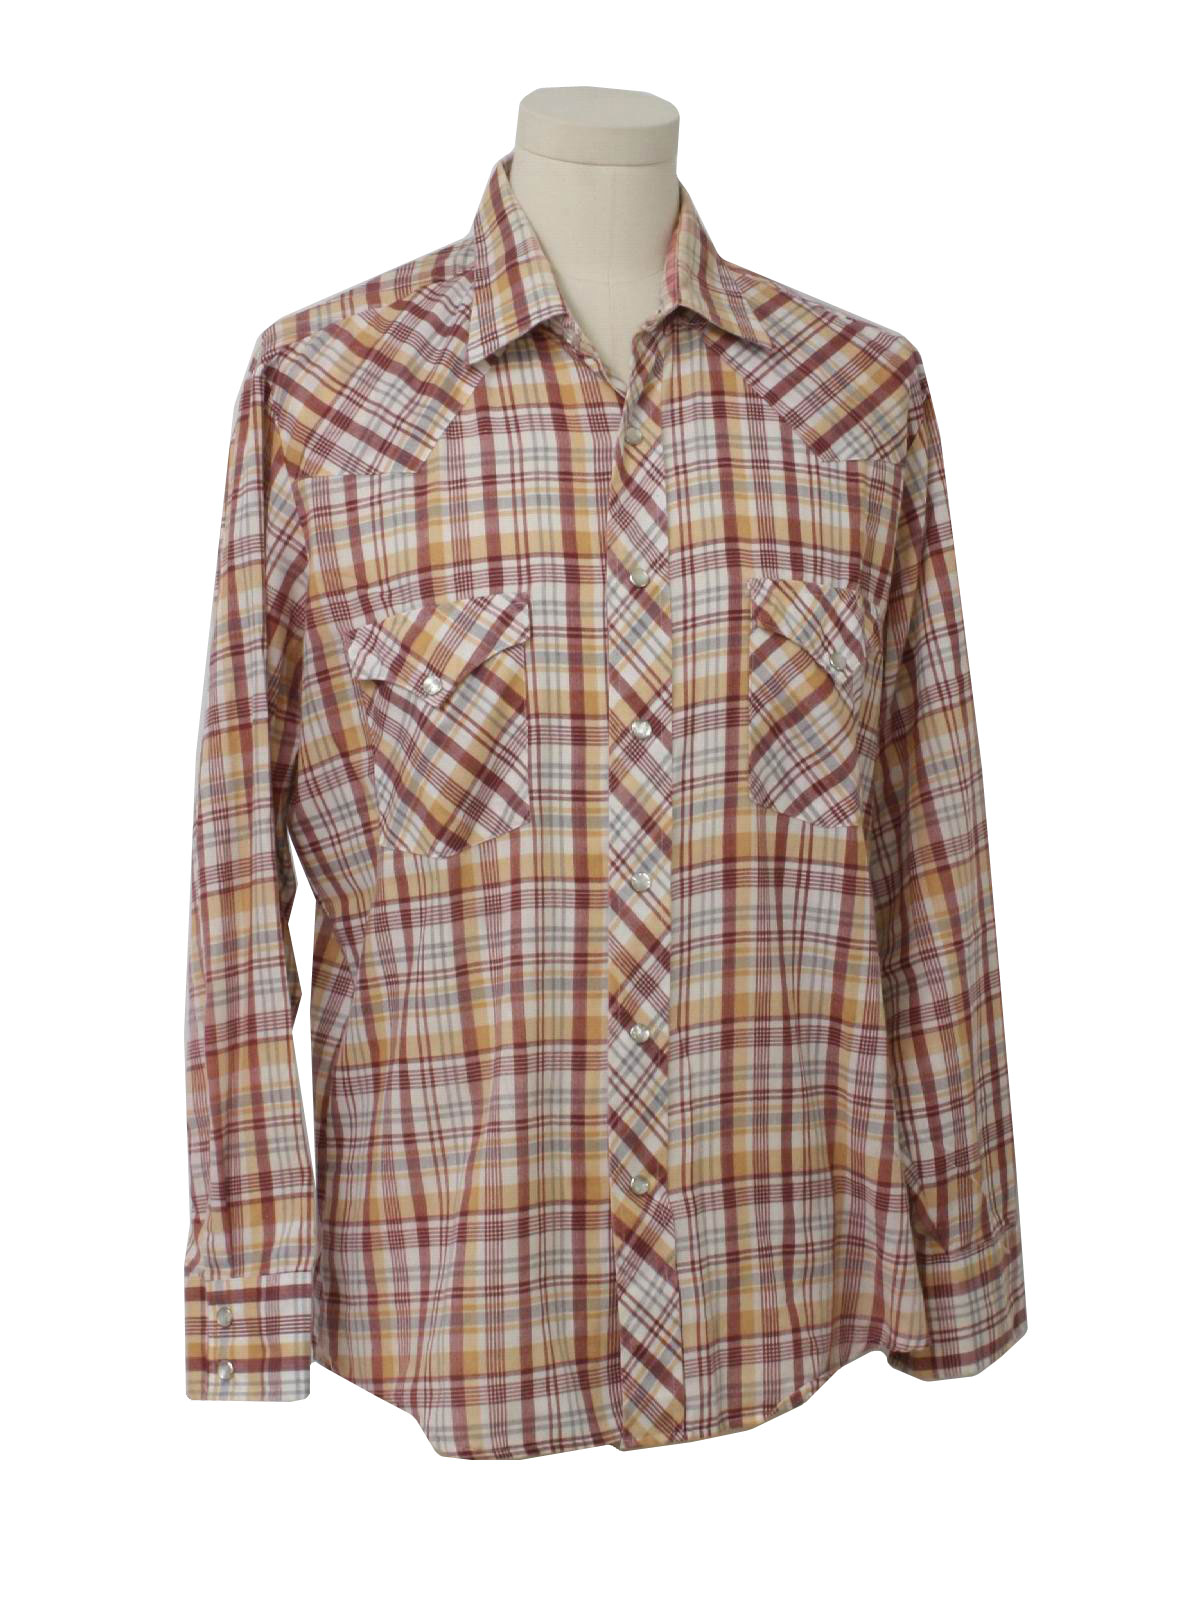 70s Western Shirts